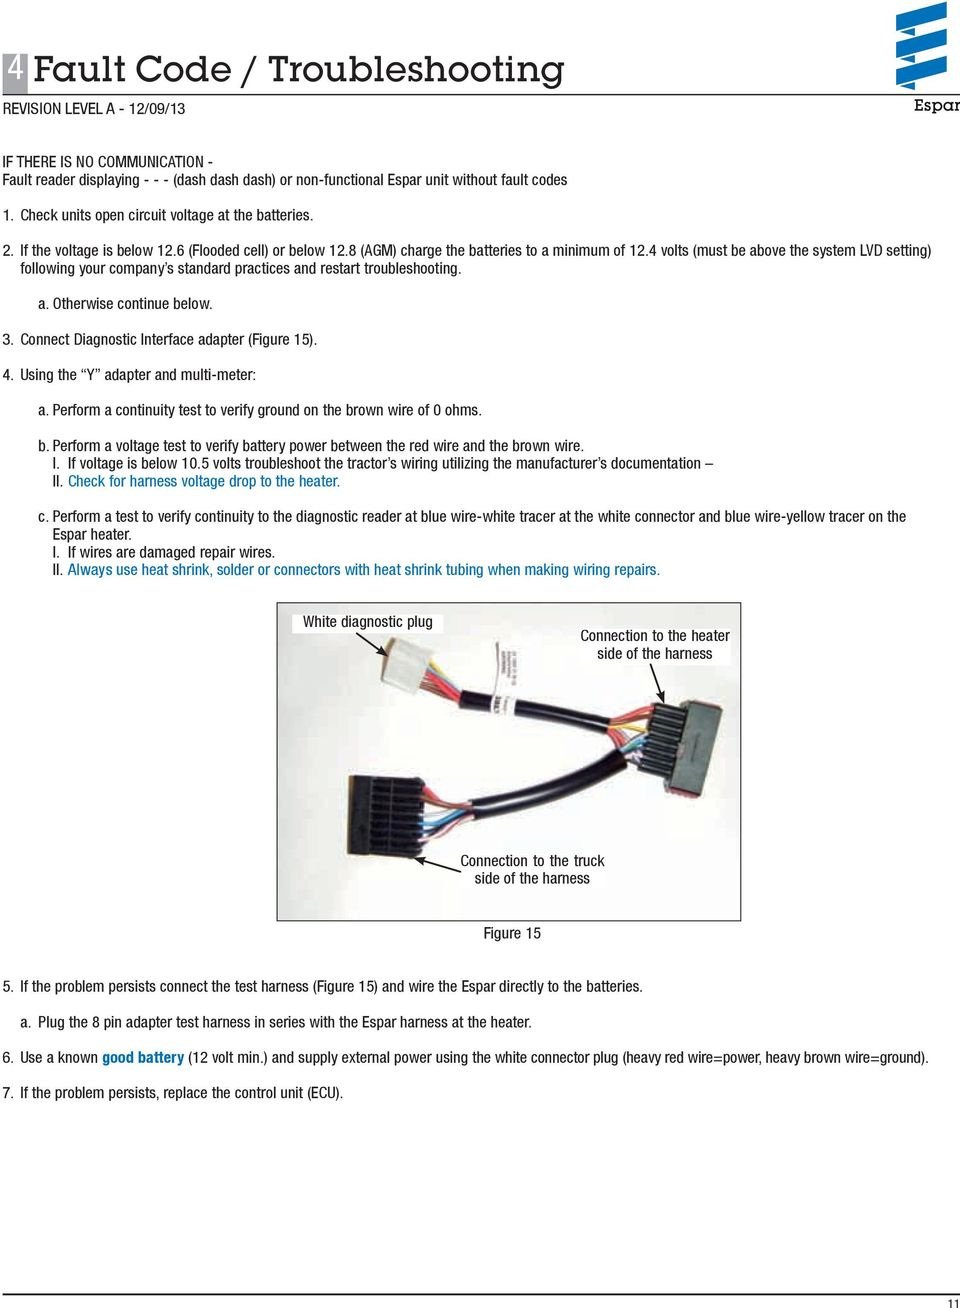 Airtronic D2 D4 Diagnostic And Repair Manual Pdf Eberspacher Rheostat Controller Plugged Into Its Connector If The 4 Volts Must Be Above System Lvd Setting Following Your Company S Standard